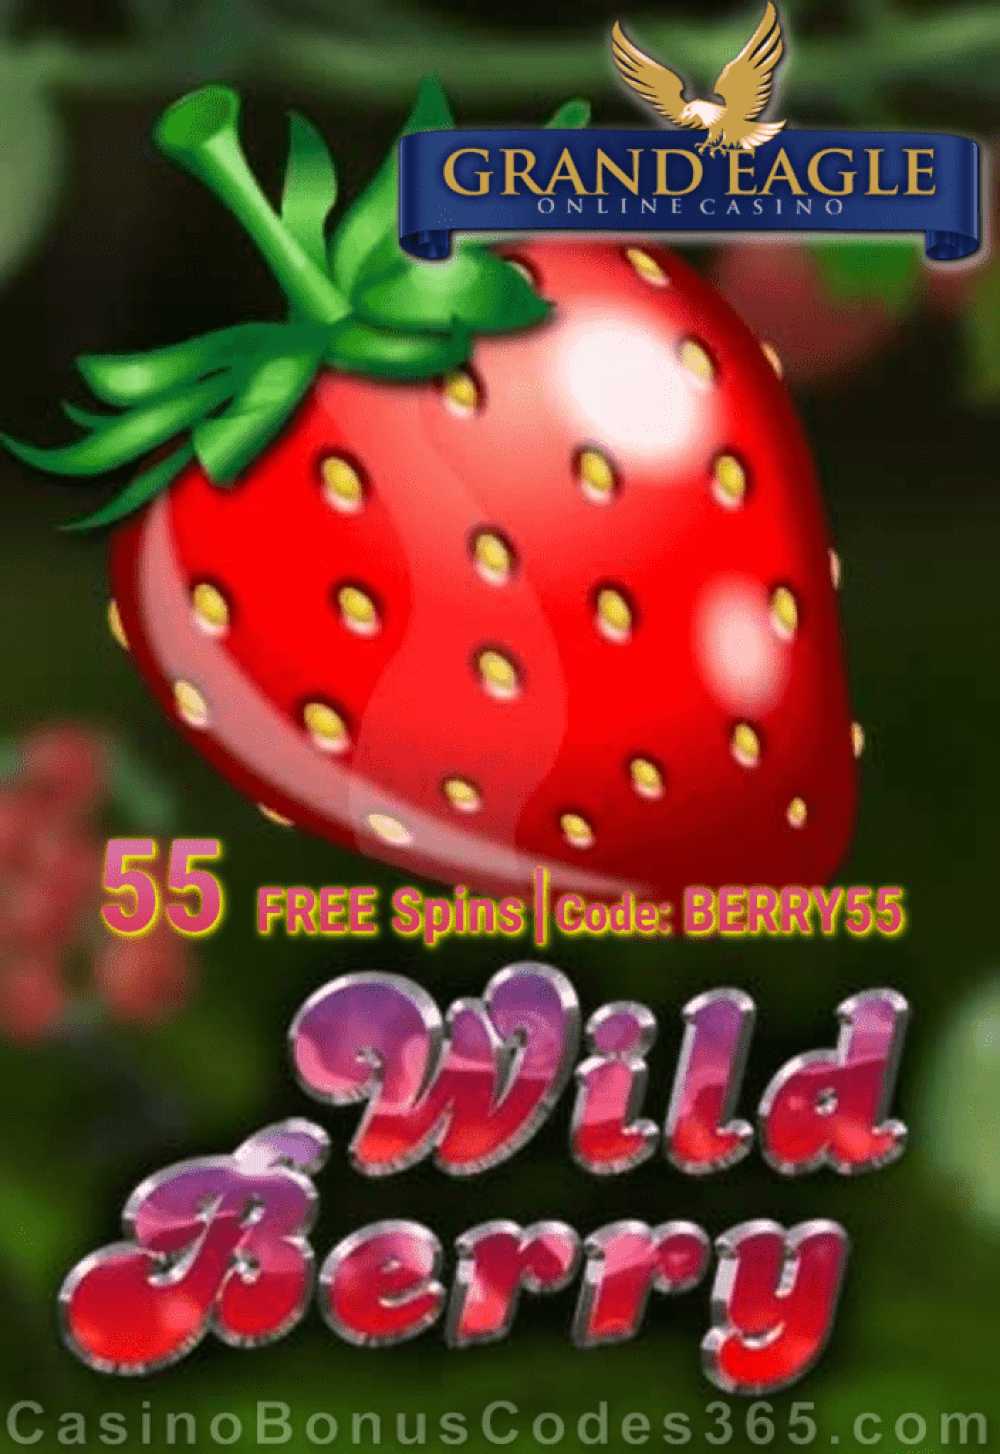 Grand Eagle Casino 55 FREE Spins on Wild Berry Exclusive Deal